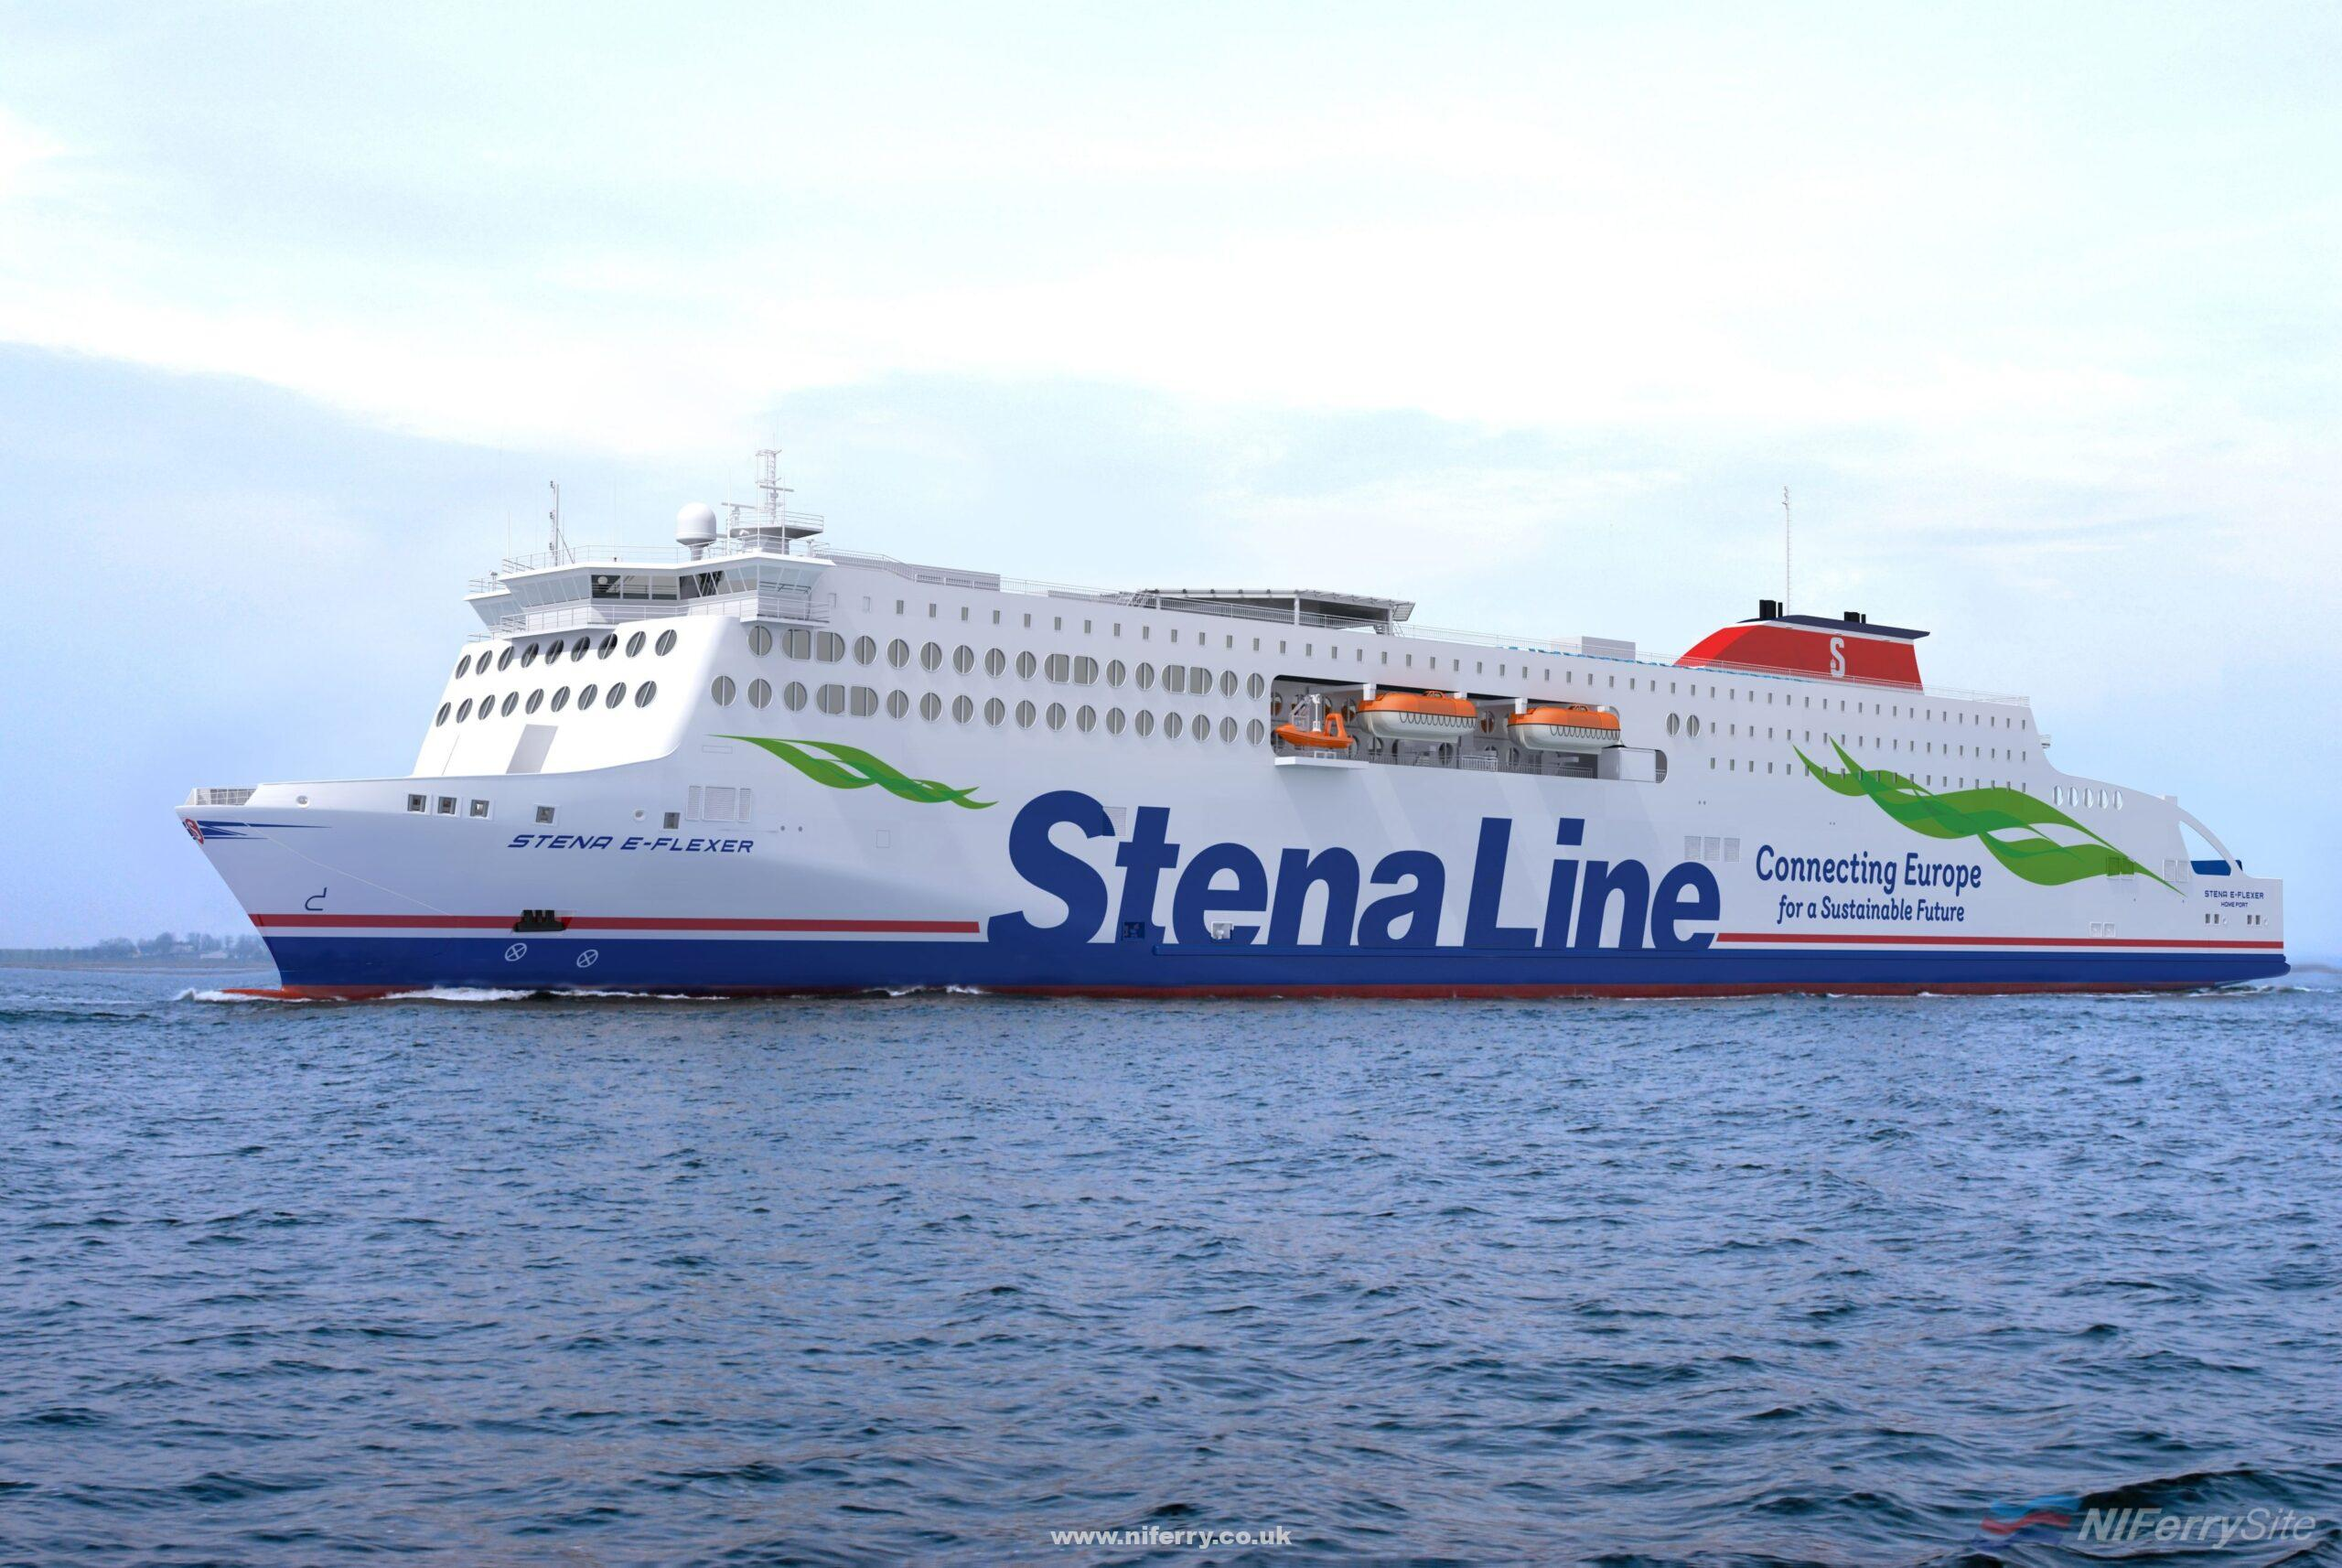 Rendering of the Stena E-Flexer design with the new Connecting Europe for a Sustainable Future slogan.